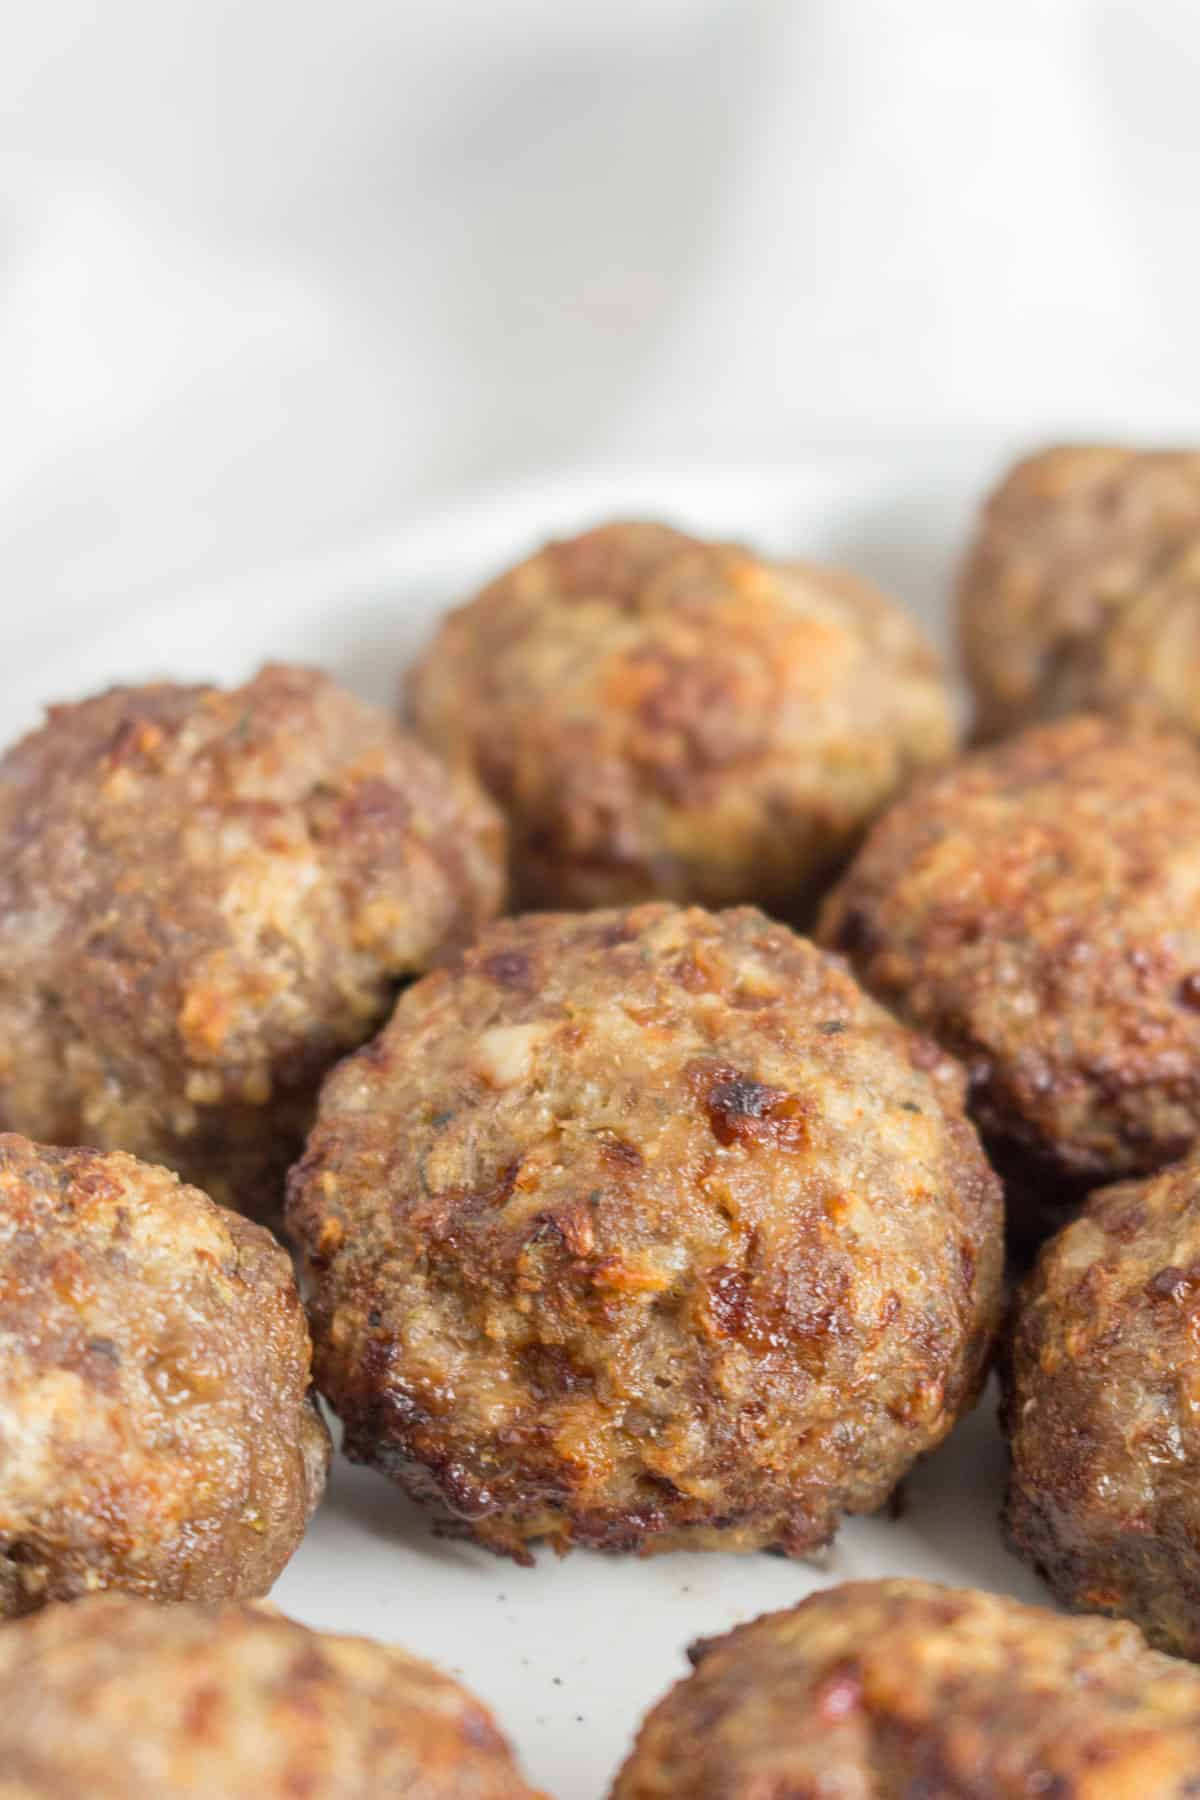 Close up of a beef air fryer meatball.